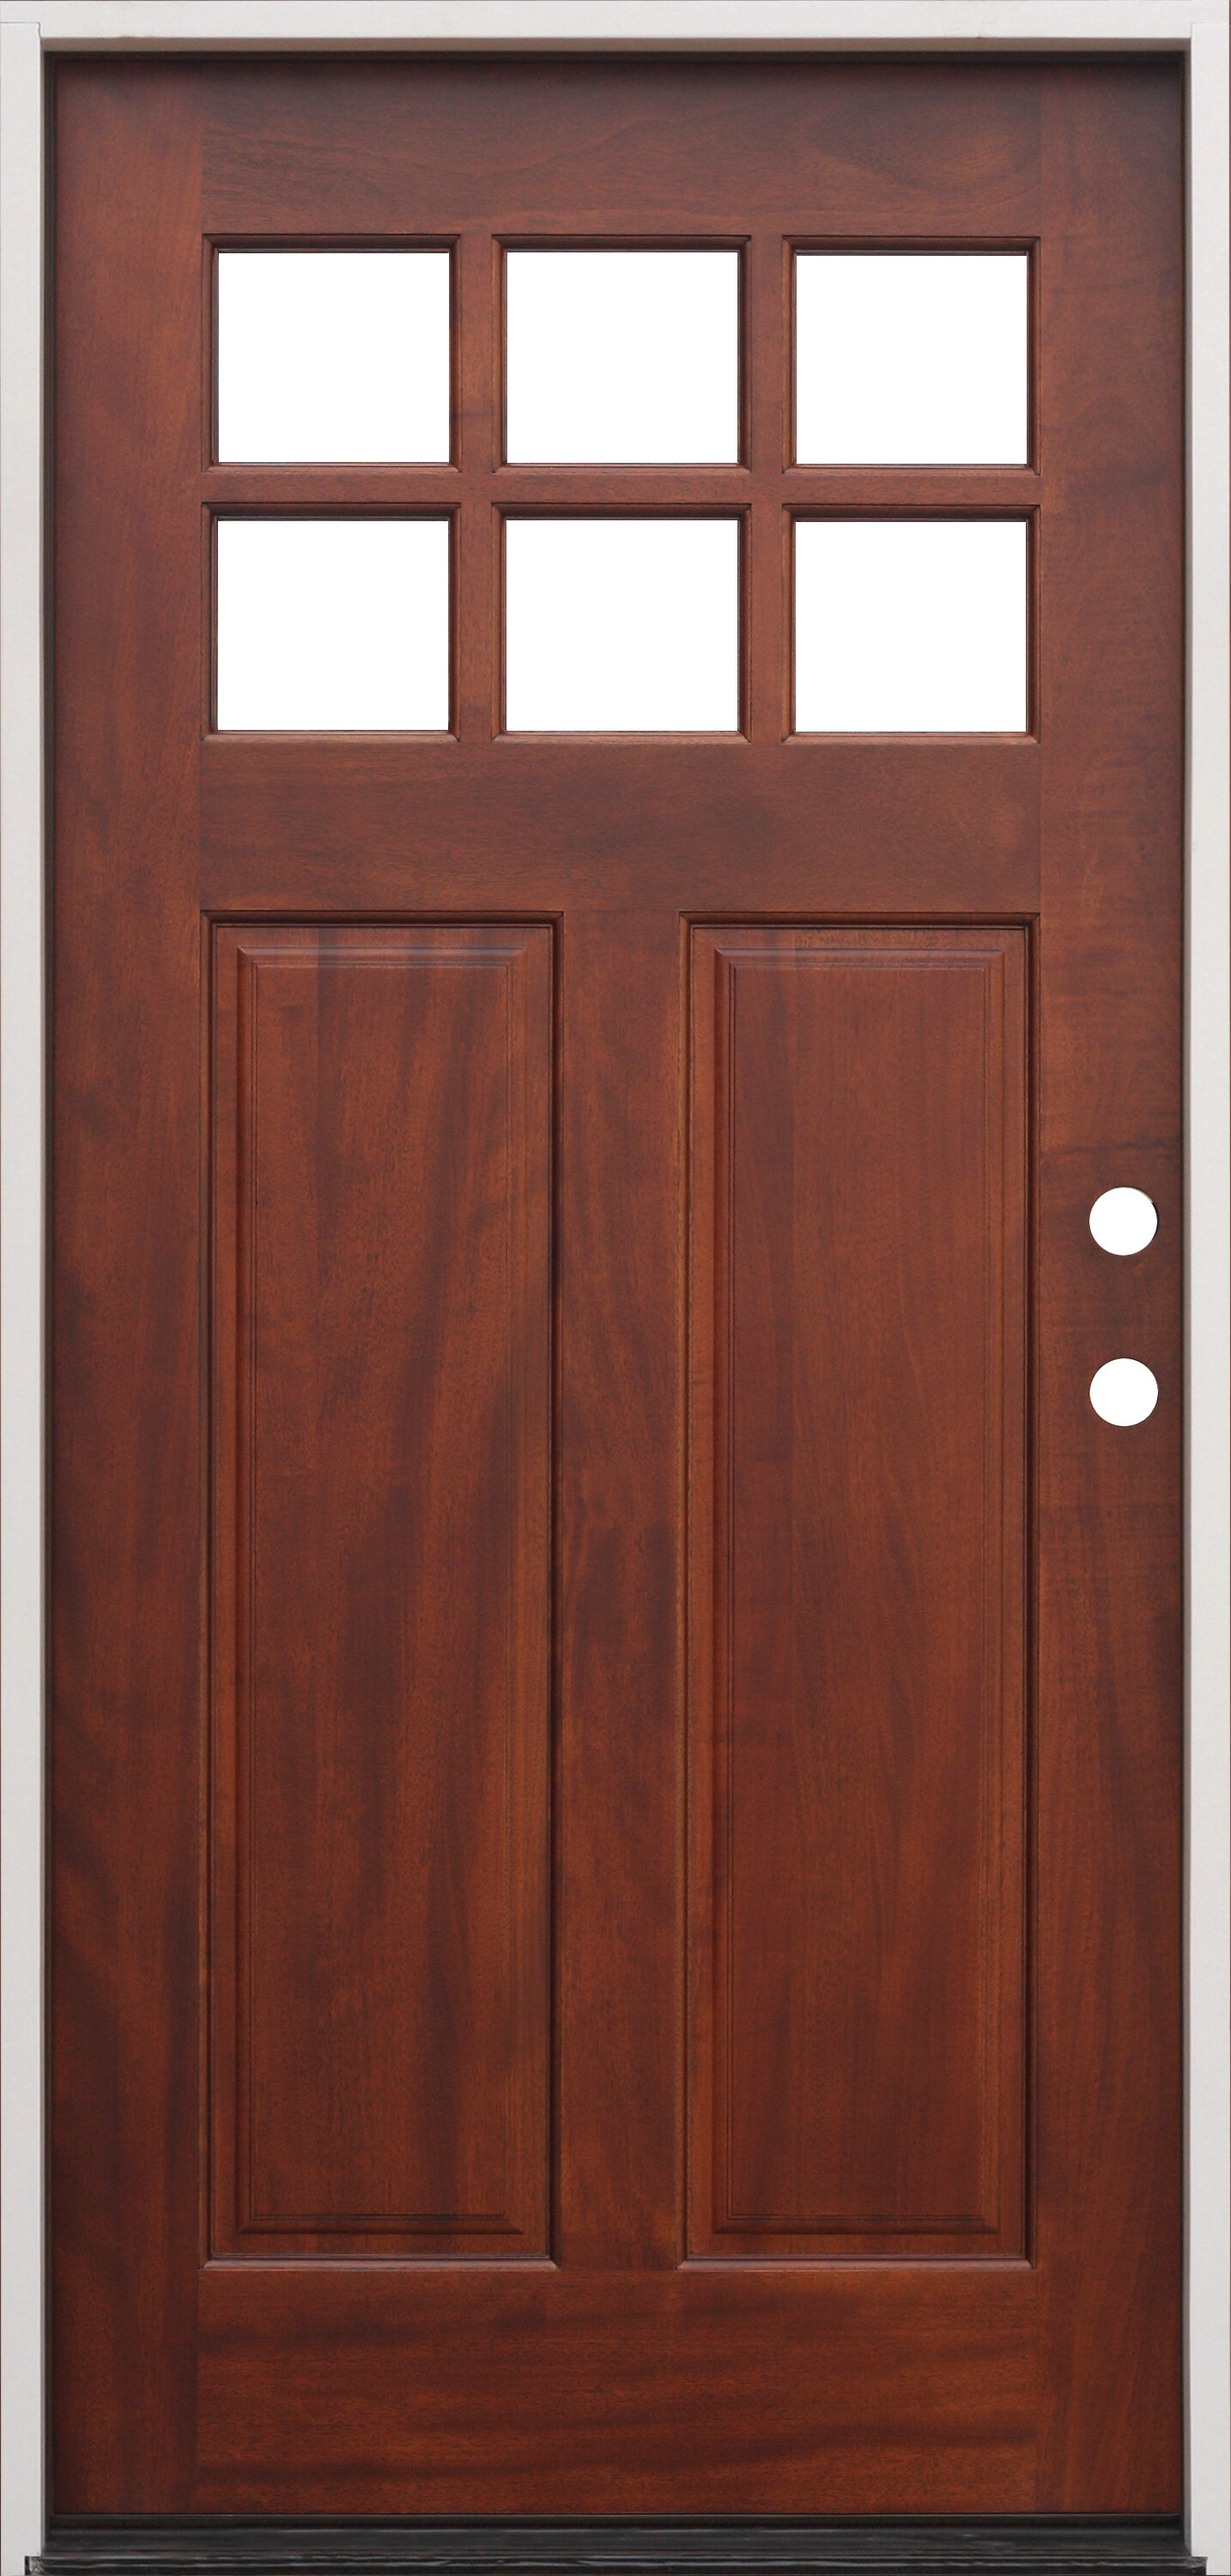 Creativeentryways Shaker Craftsman 6 Lite Ready To Install Wood